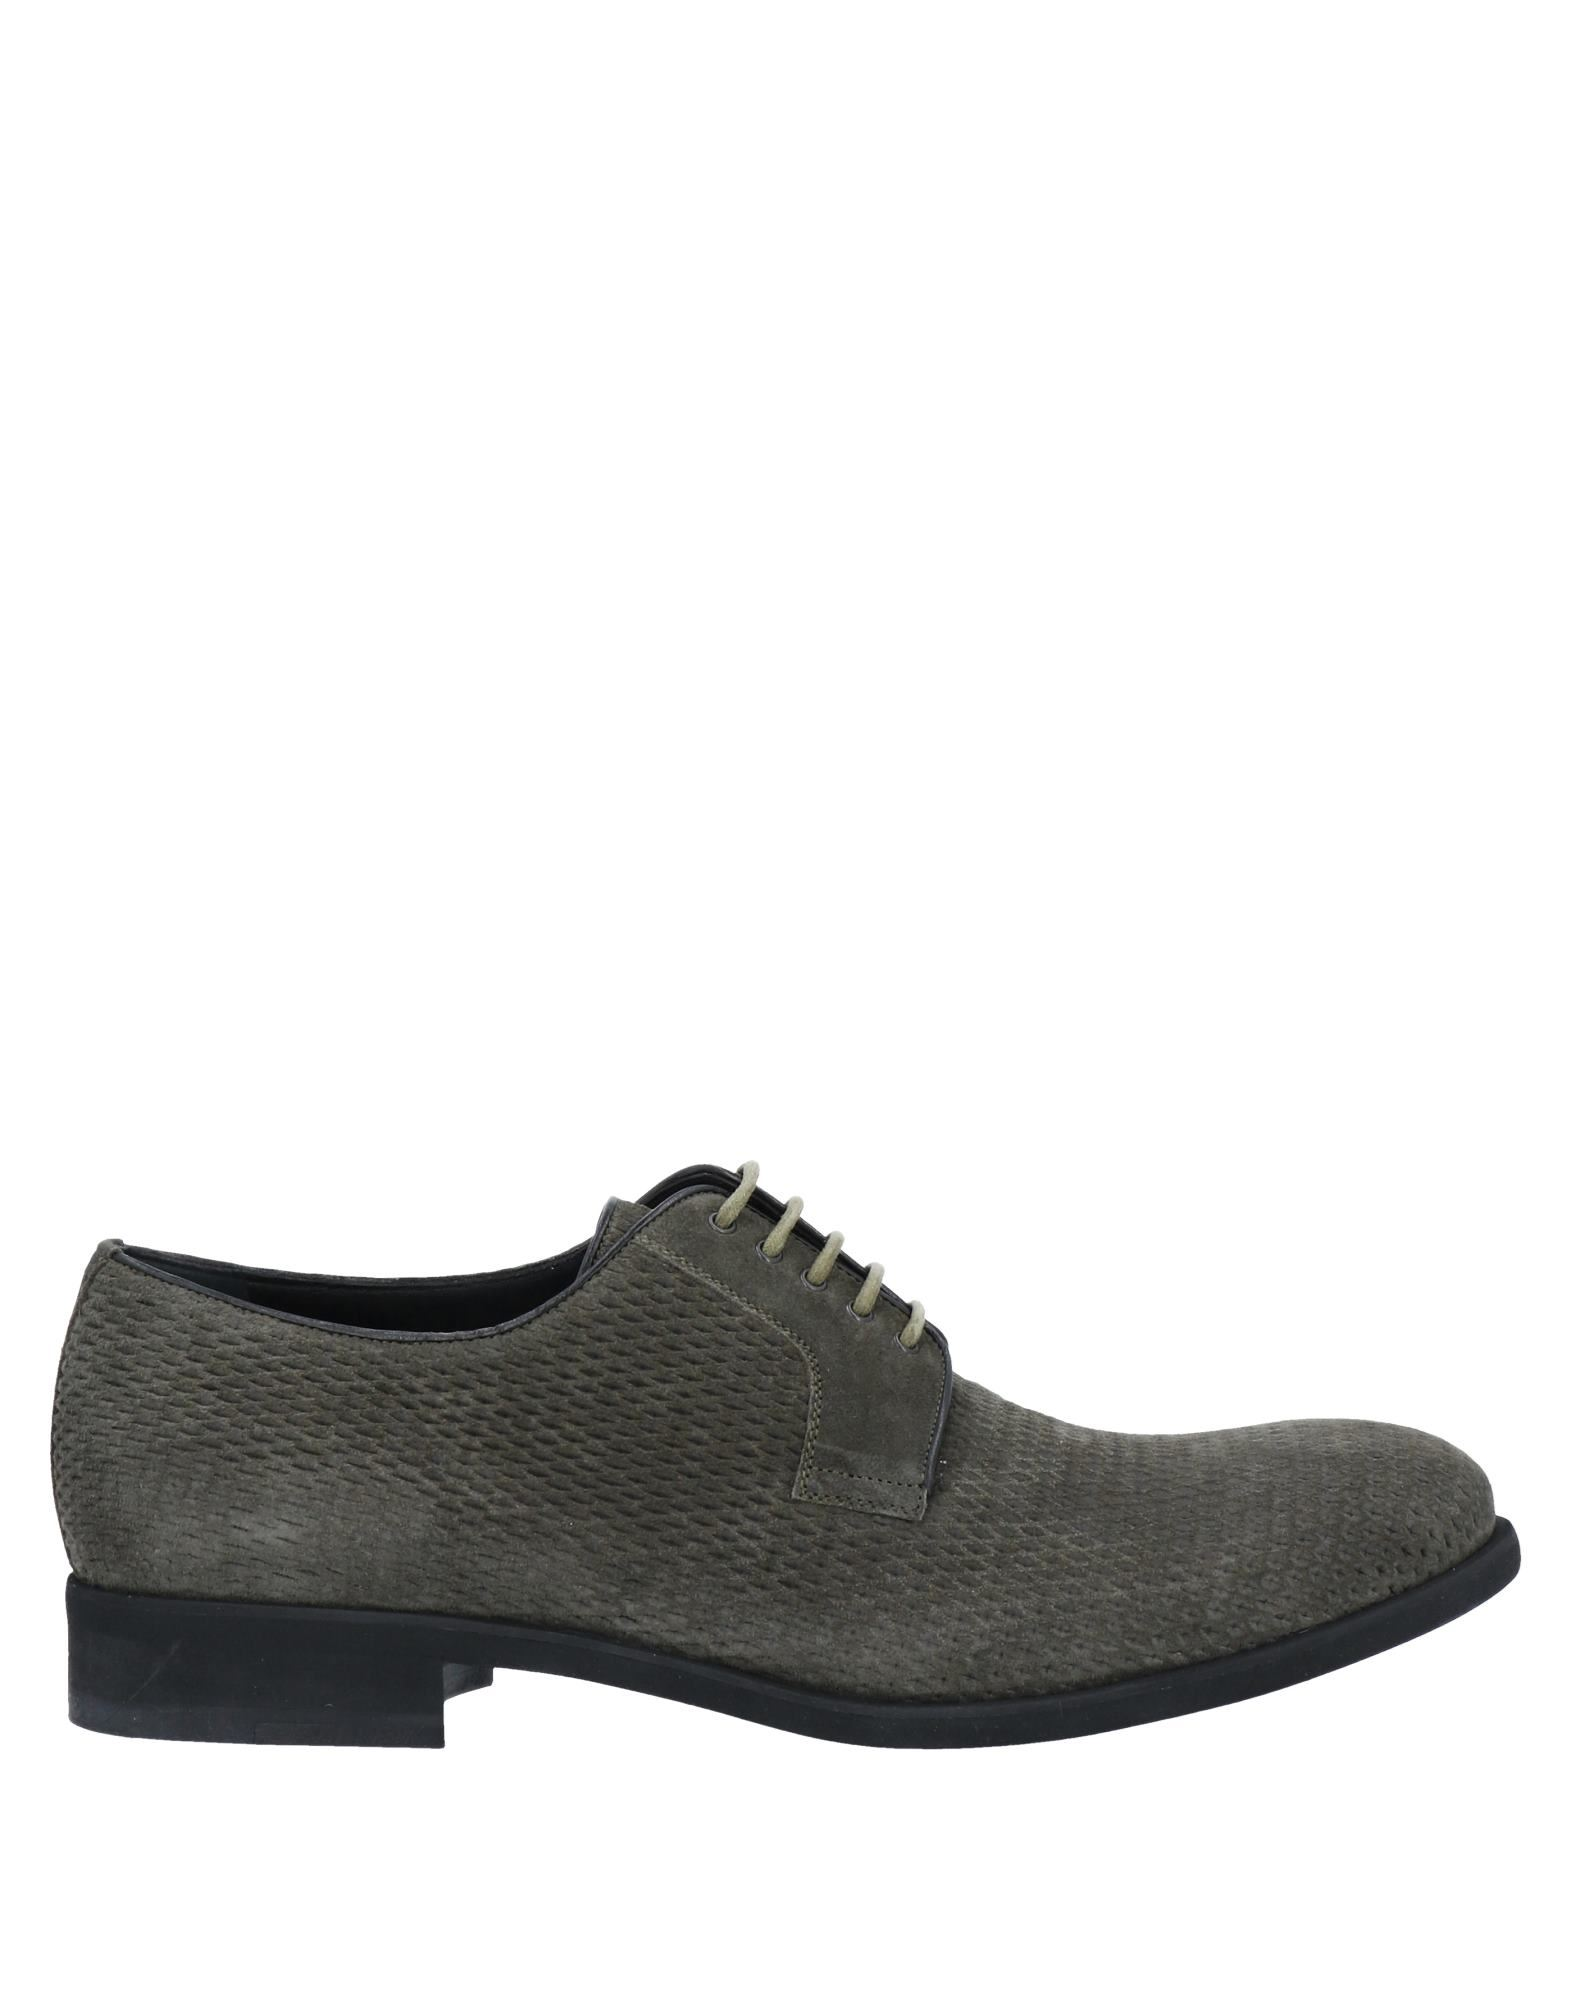 A.testoni Lace-up Shoes In Military Green